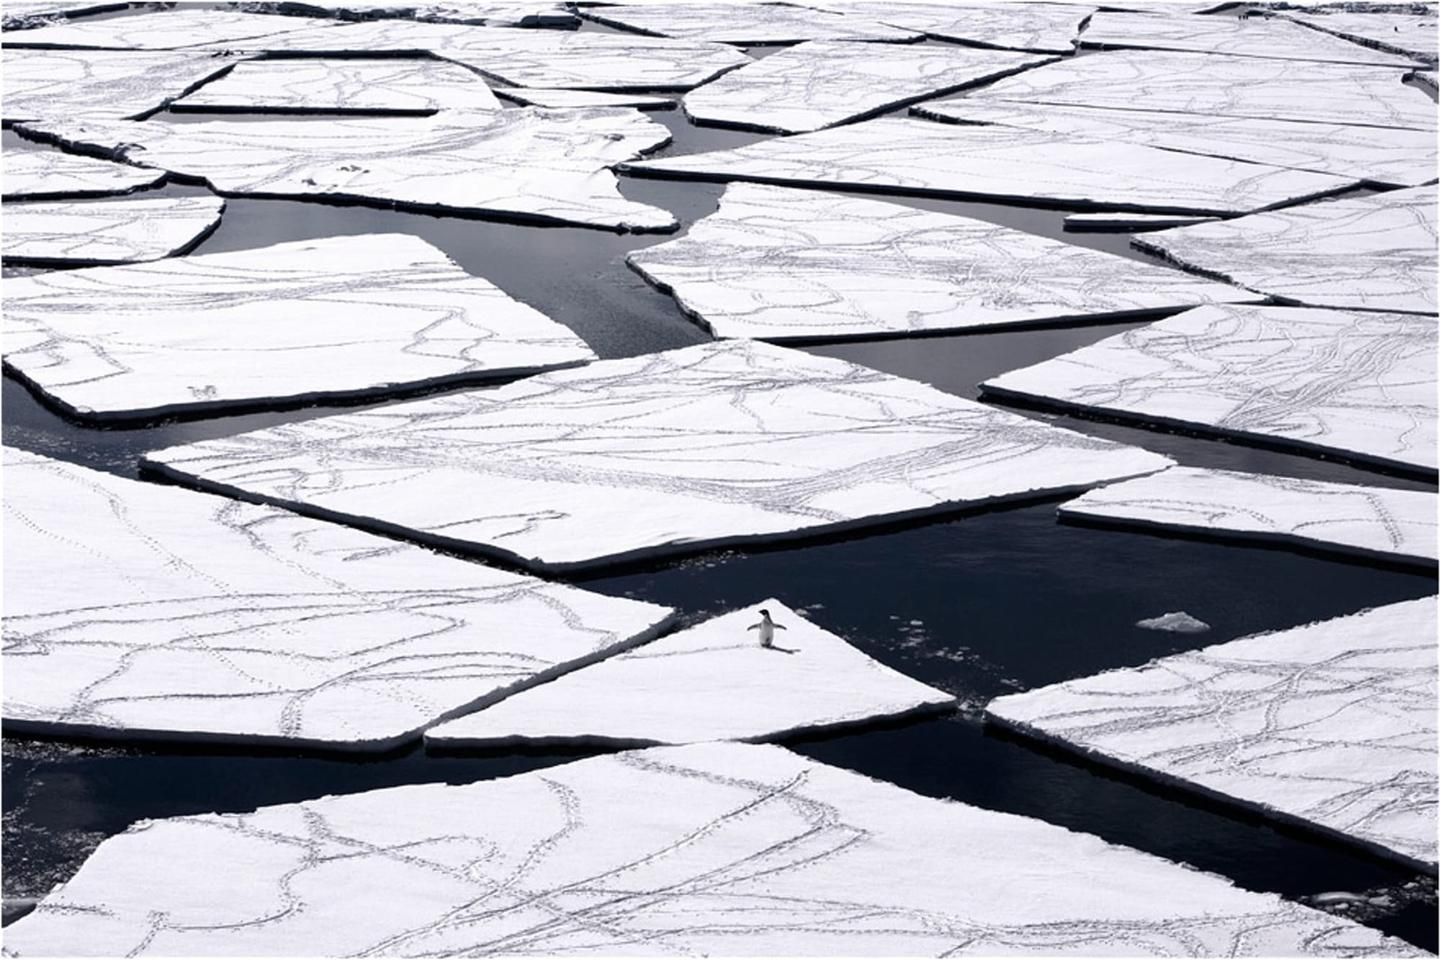 A lone penguin navigates the icy waters of the Ross Sea